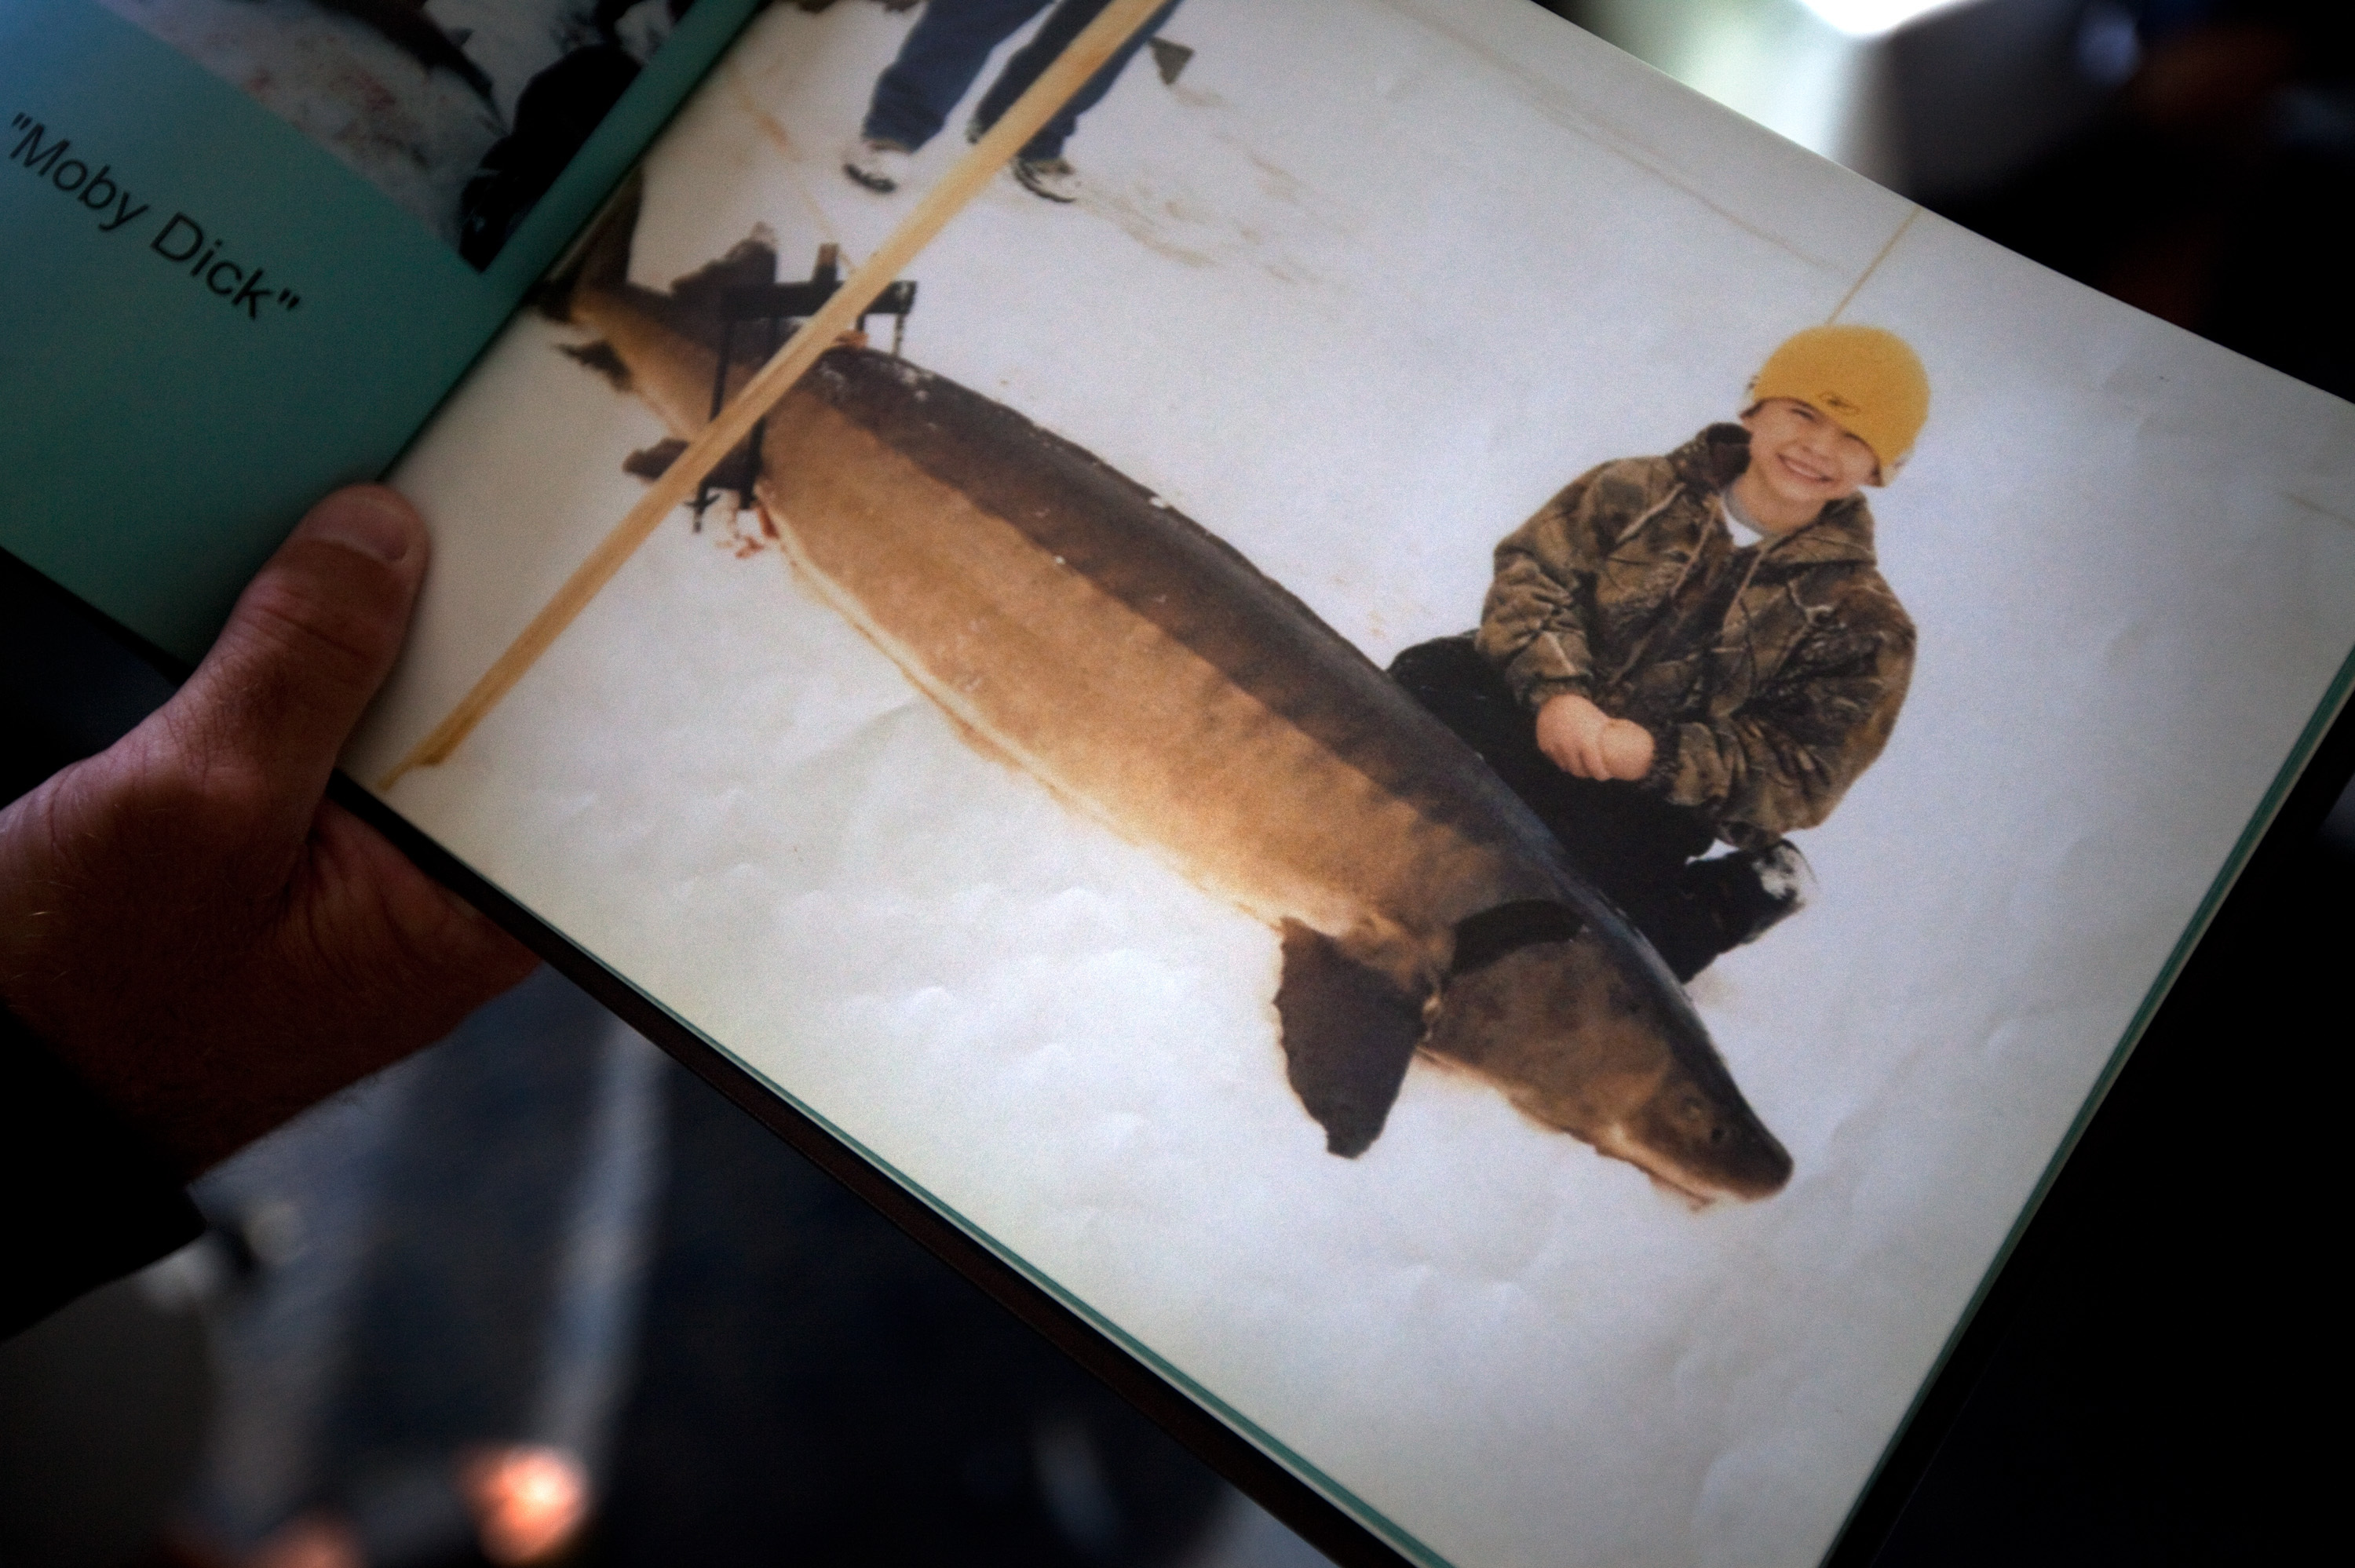 Shawn Wendt shows off a picture of his son Zach with a sturgeon that was speared and caught through the ice on Lake Winnebago. Sturgeon spearing is a popular winter sport in the area.